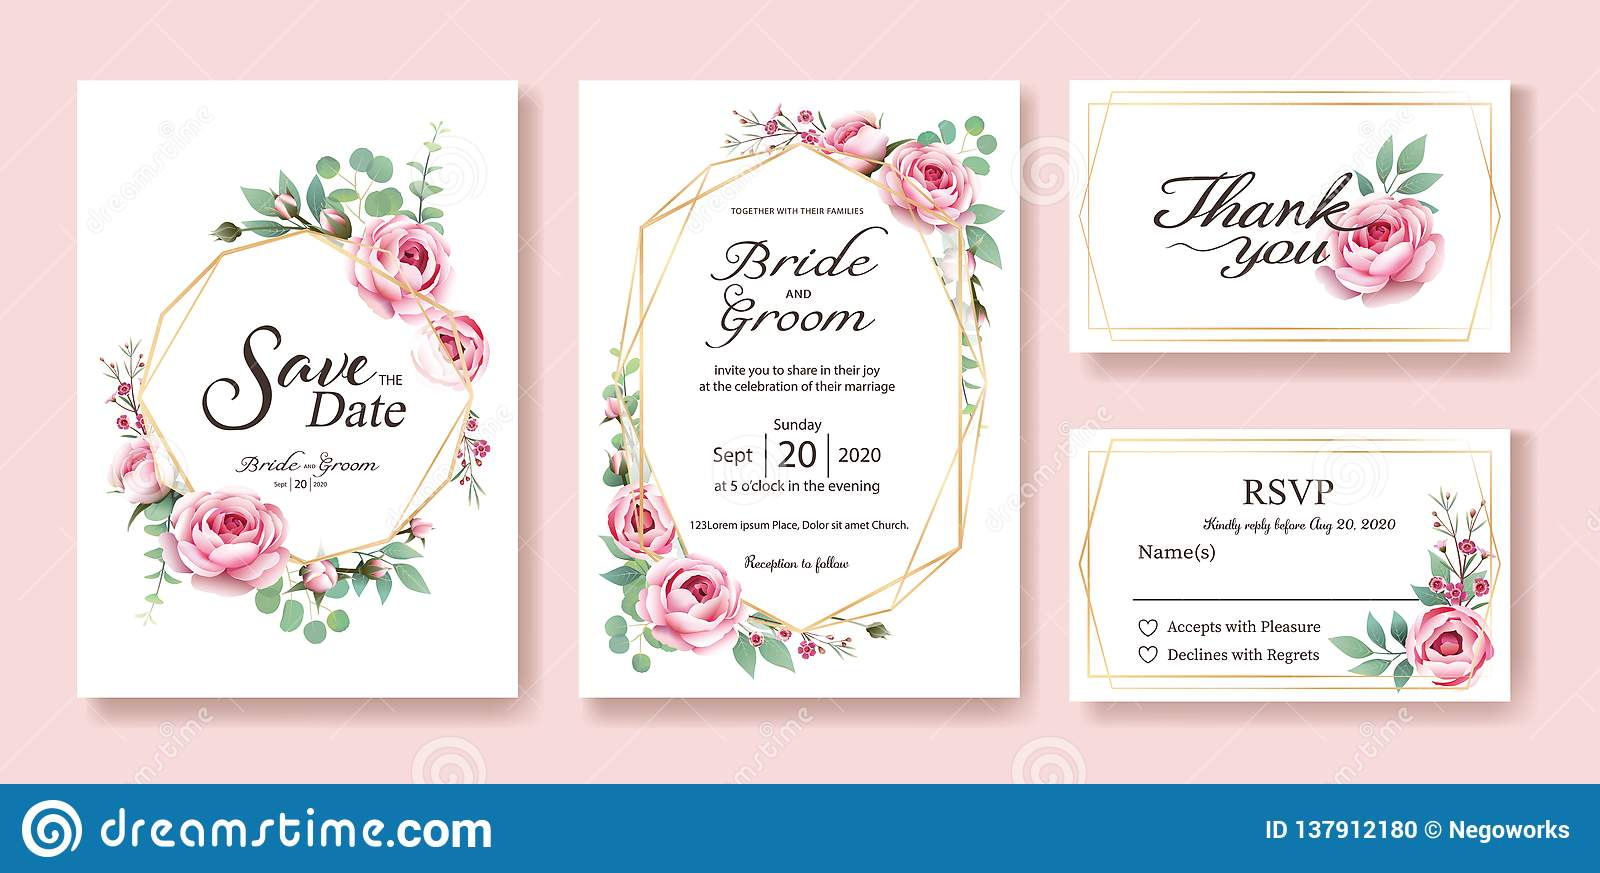 Floral wedding Invitation, save the date, thank you, rsvp card Design template. Vector. Queen of Sweden rose, silver dollar, leave